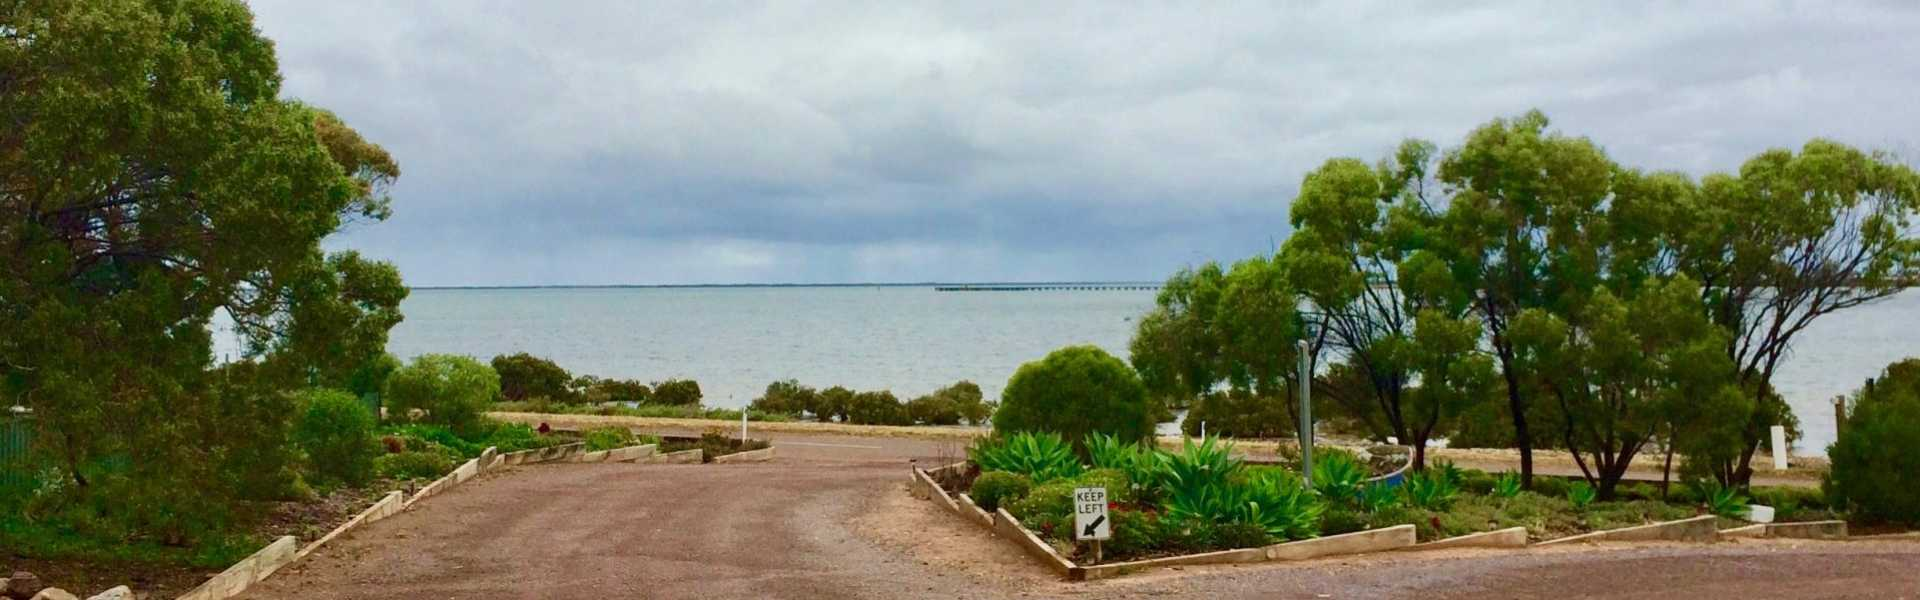 Kui Parks, Harbour View Caravan Park, Bay